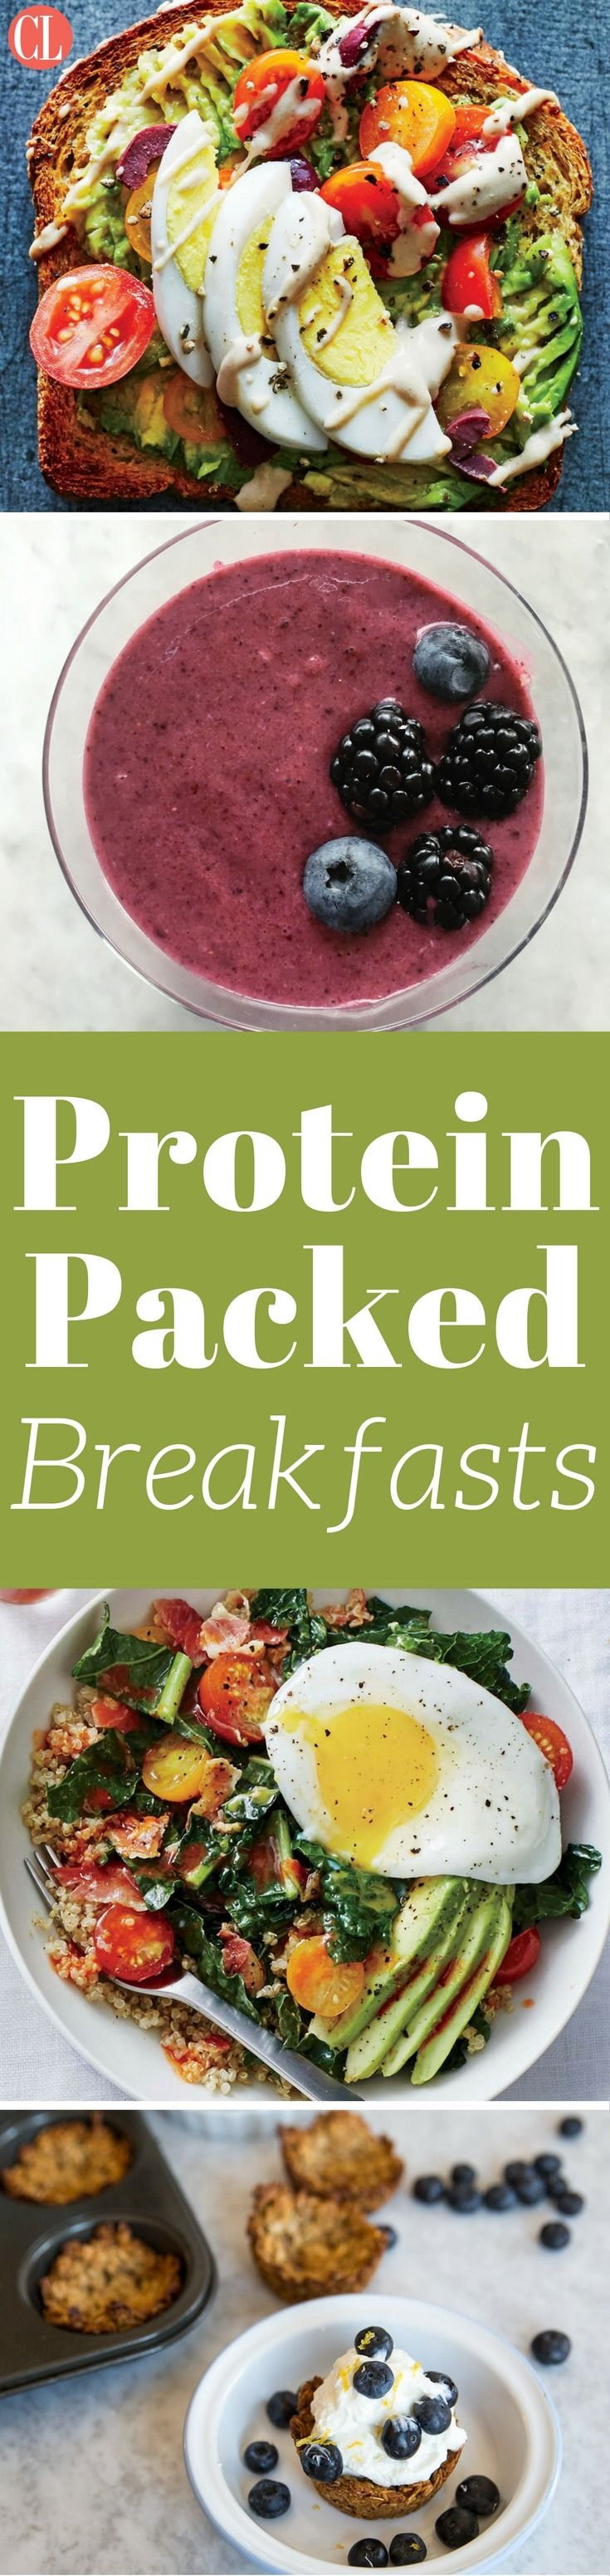 There are so many ways to sneak in extra protein during the most important meal of the day, and we're not just relying on eggs. From yogurt to vegetables to milk, breakfast is a meal that is waiting to be filled with wholesome goodness. Protein is great to consume in the morning as the body will break down the nutrient-dense food throughout the day. Get your day started right with these protein-packed breakfast that will keep you energized all day long. | Cooking Light